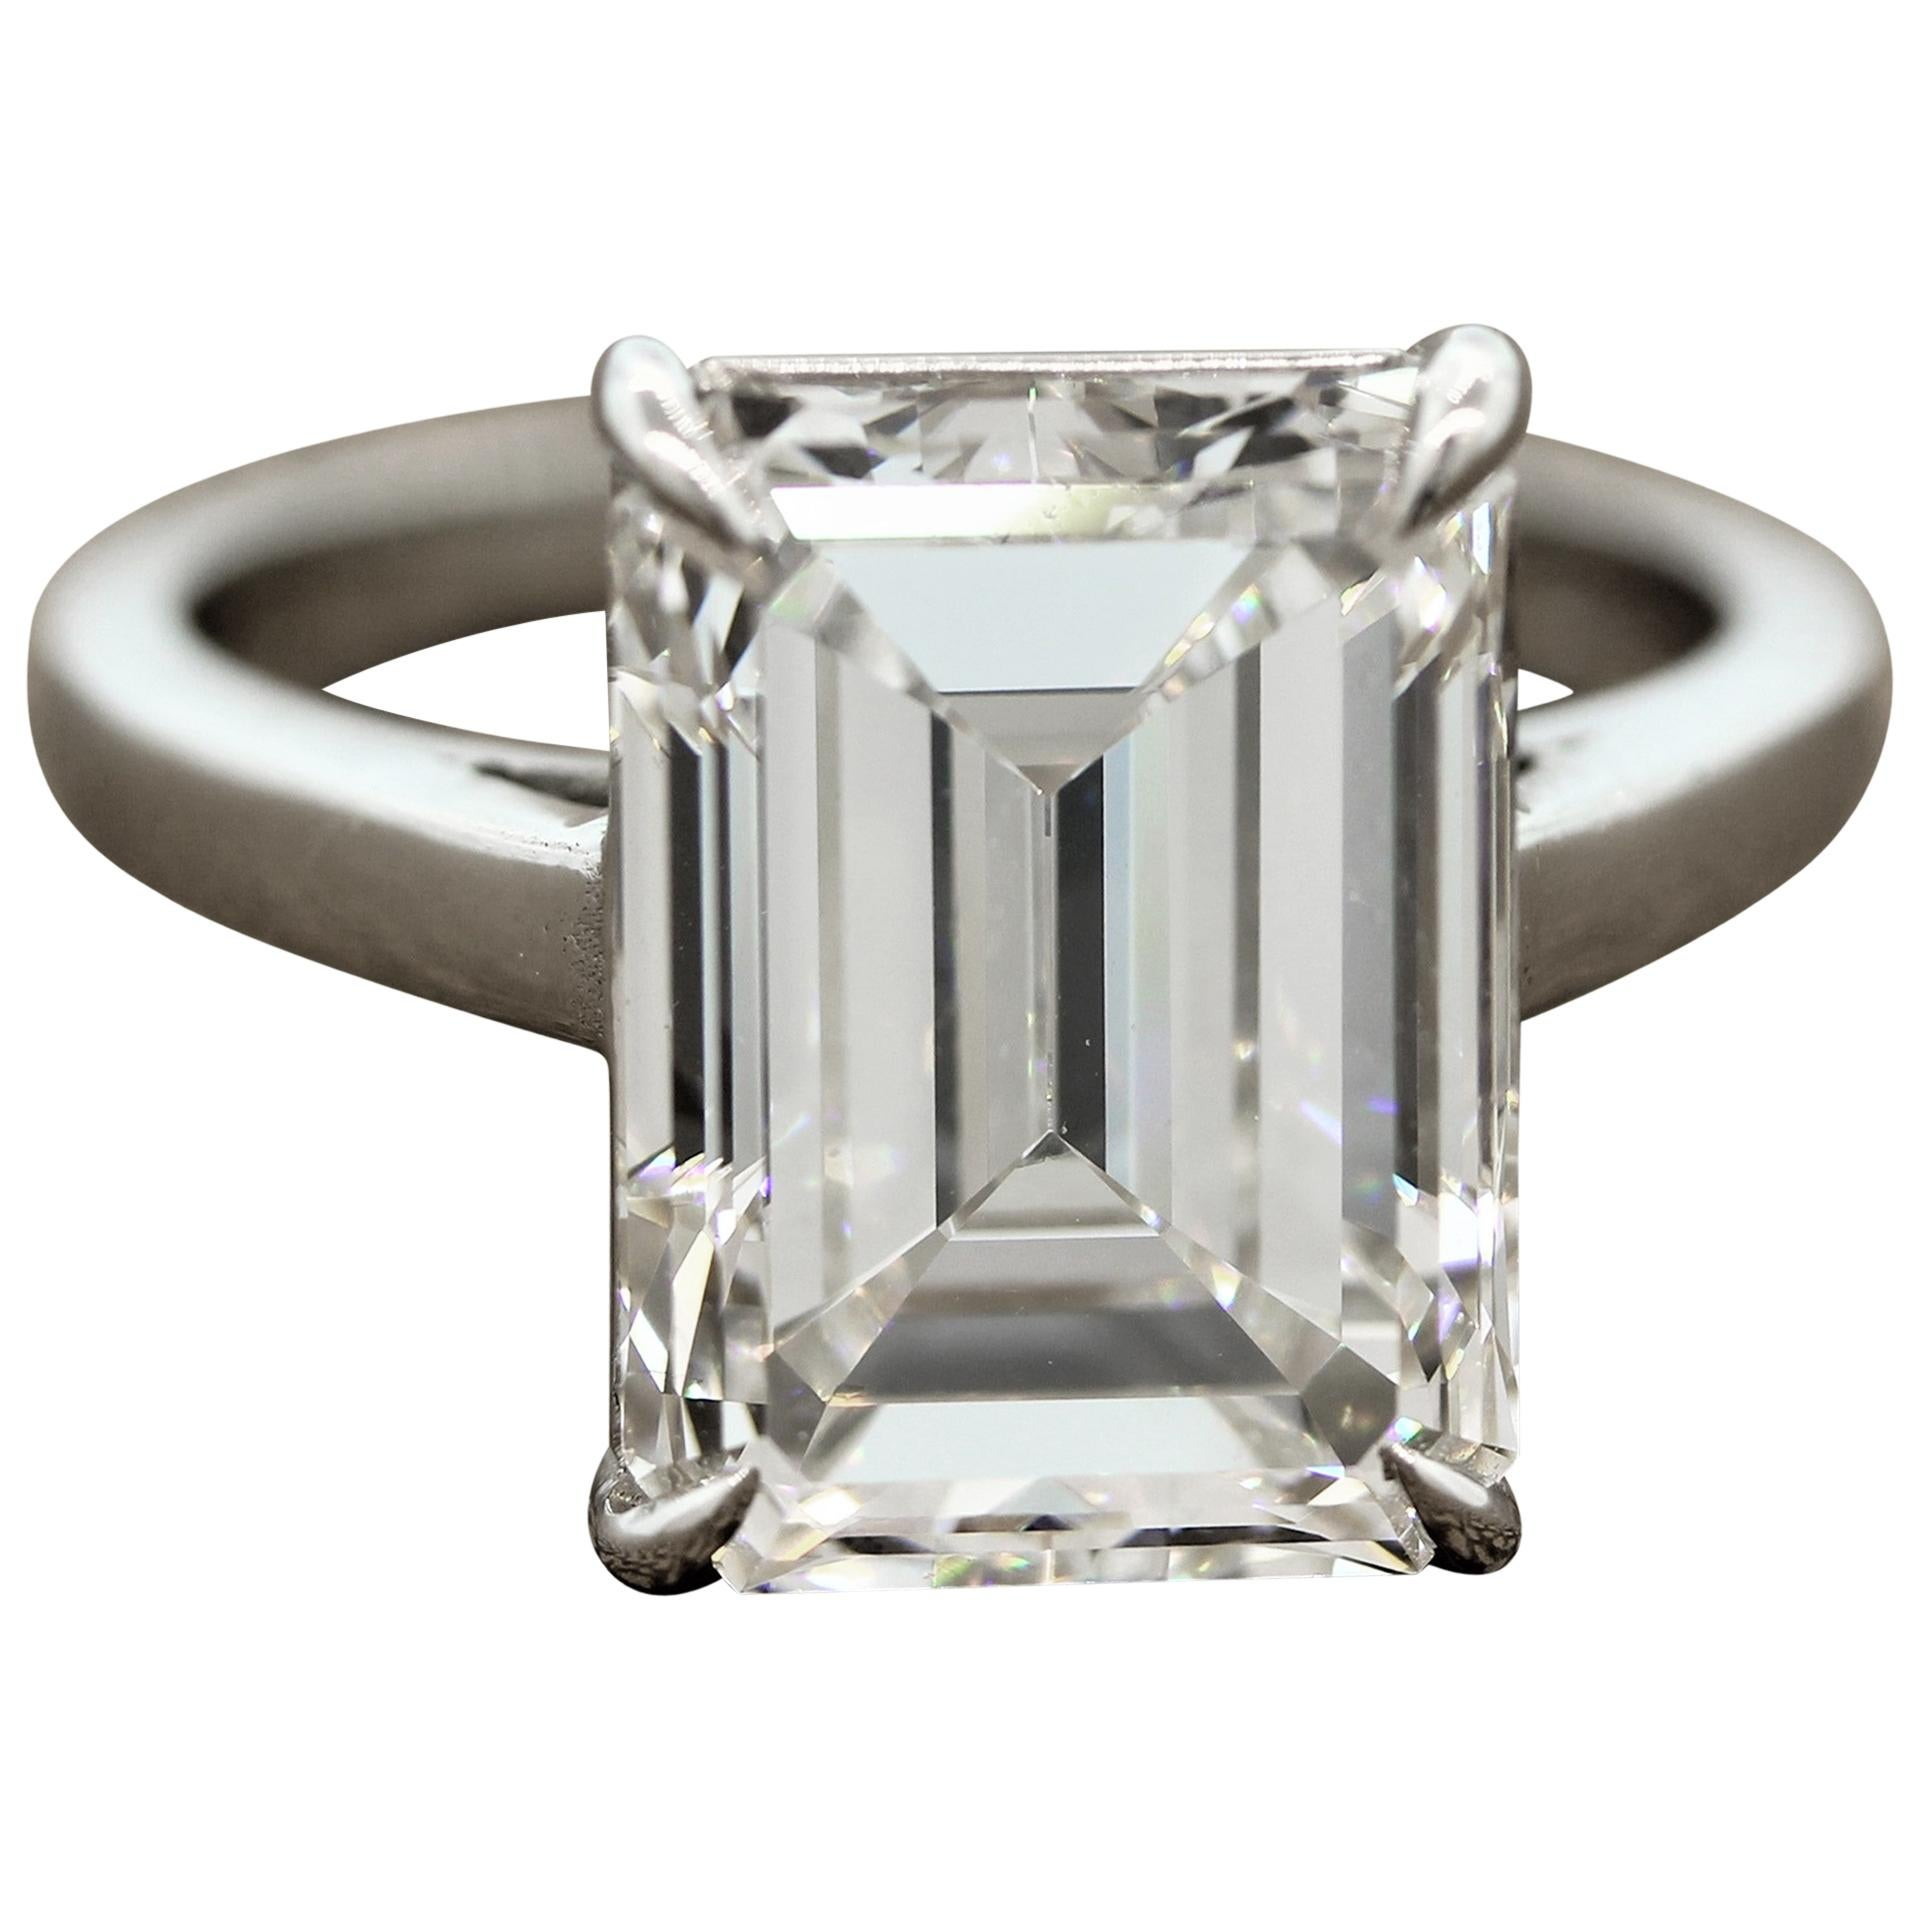 GIA Certified 6.58 Carat Emerald Cut Diamond Engagement Ring, H-VS1